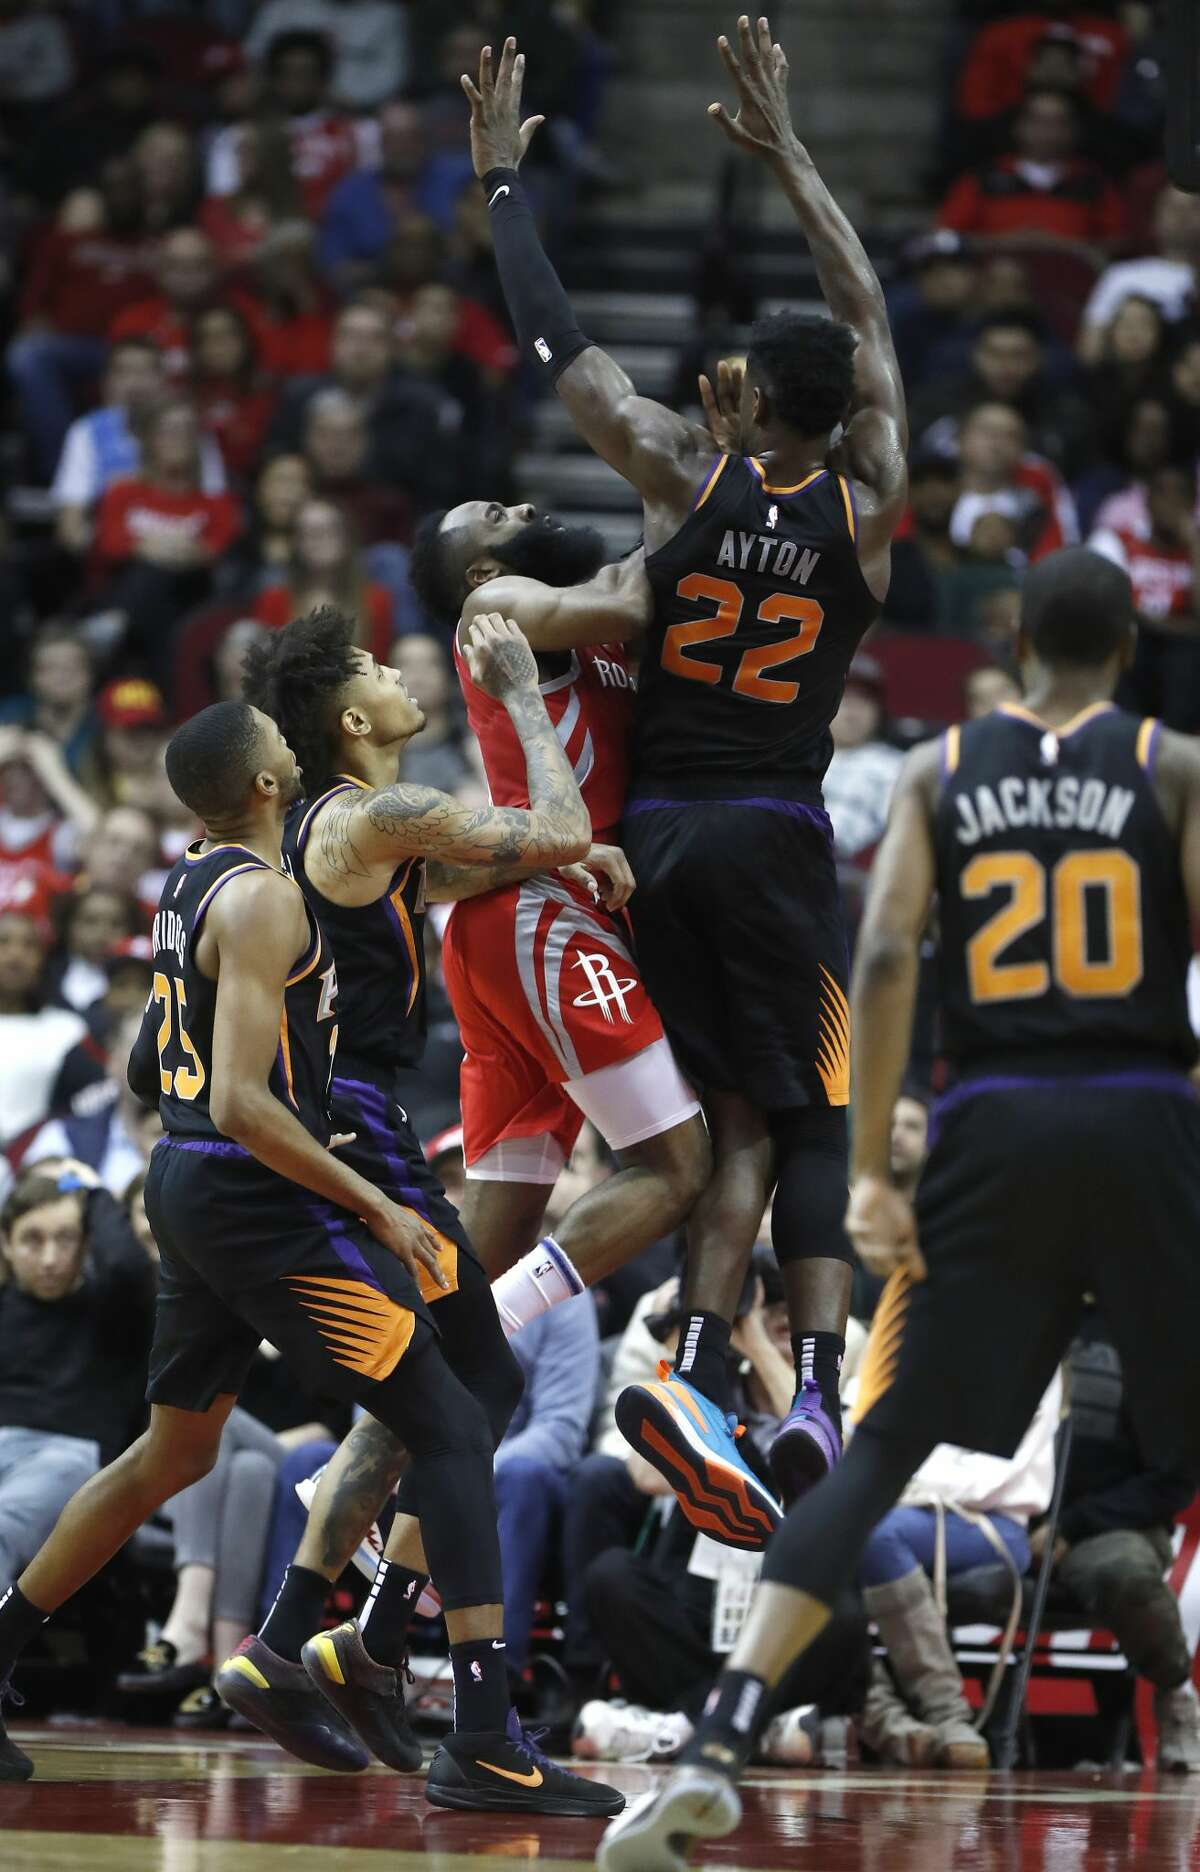 Houston Rockets guard James Harden (13) crashes into Phoenix Suns center Deandre Ayton (22) during the second half of an NBA game at Toyota Center, Friday, March 15, 2019, in Houston. Rockets won the game 108-102.